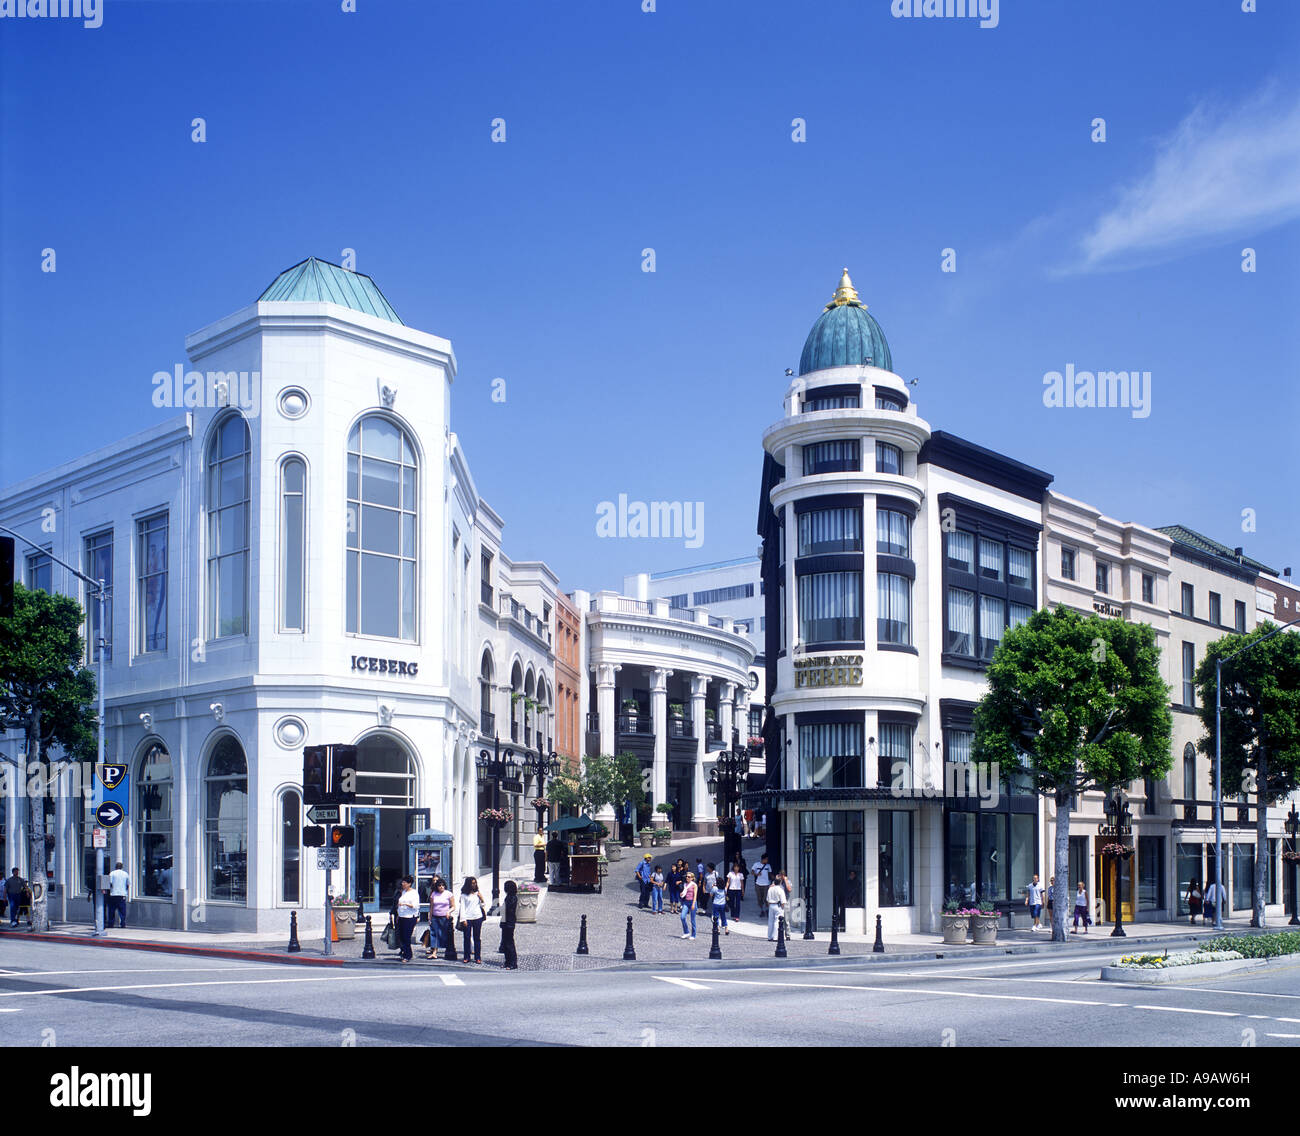 SHOPS RODEO DRIVE BEVERLY HILLS LOS ANGELES CALIFORNIA USA Stock Photo